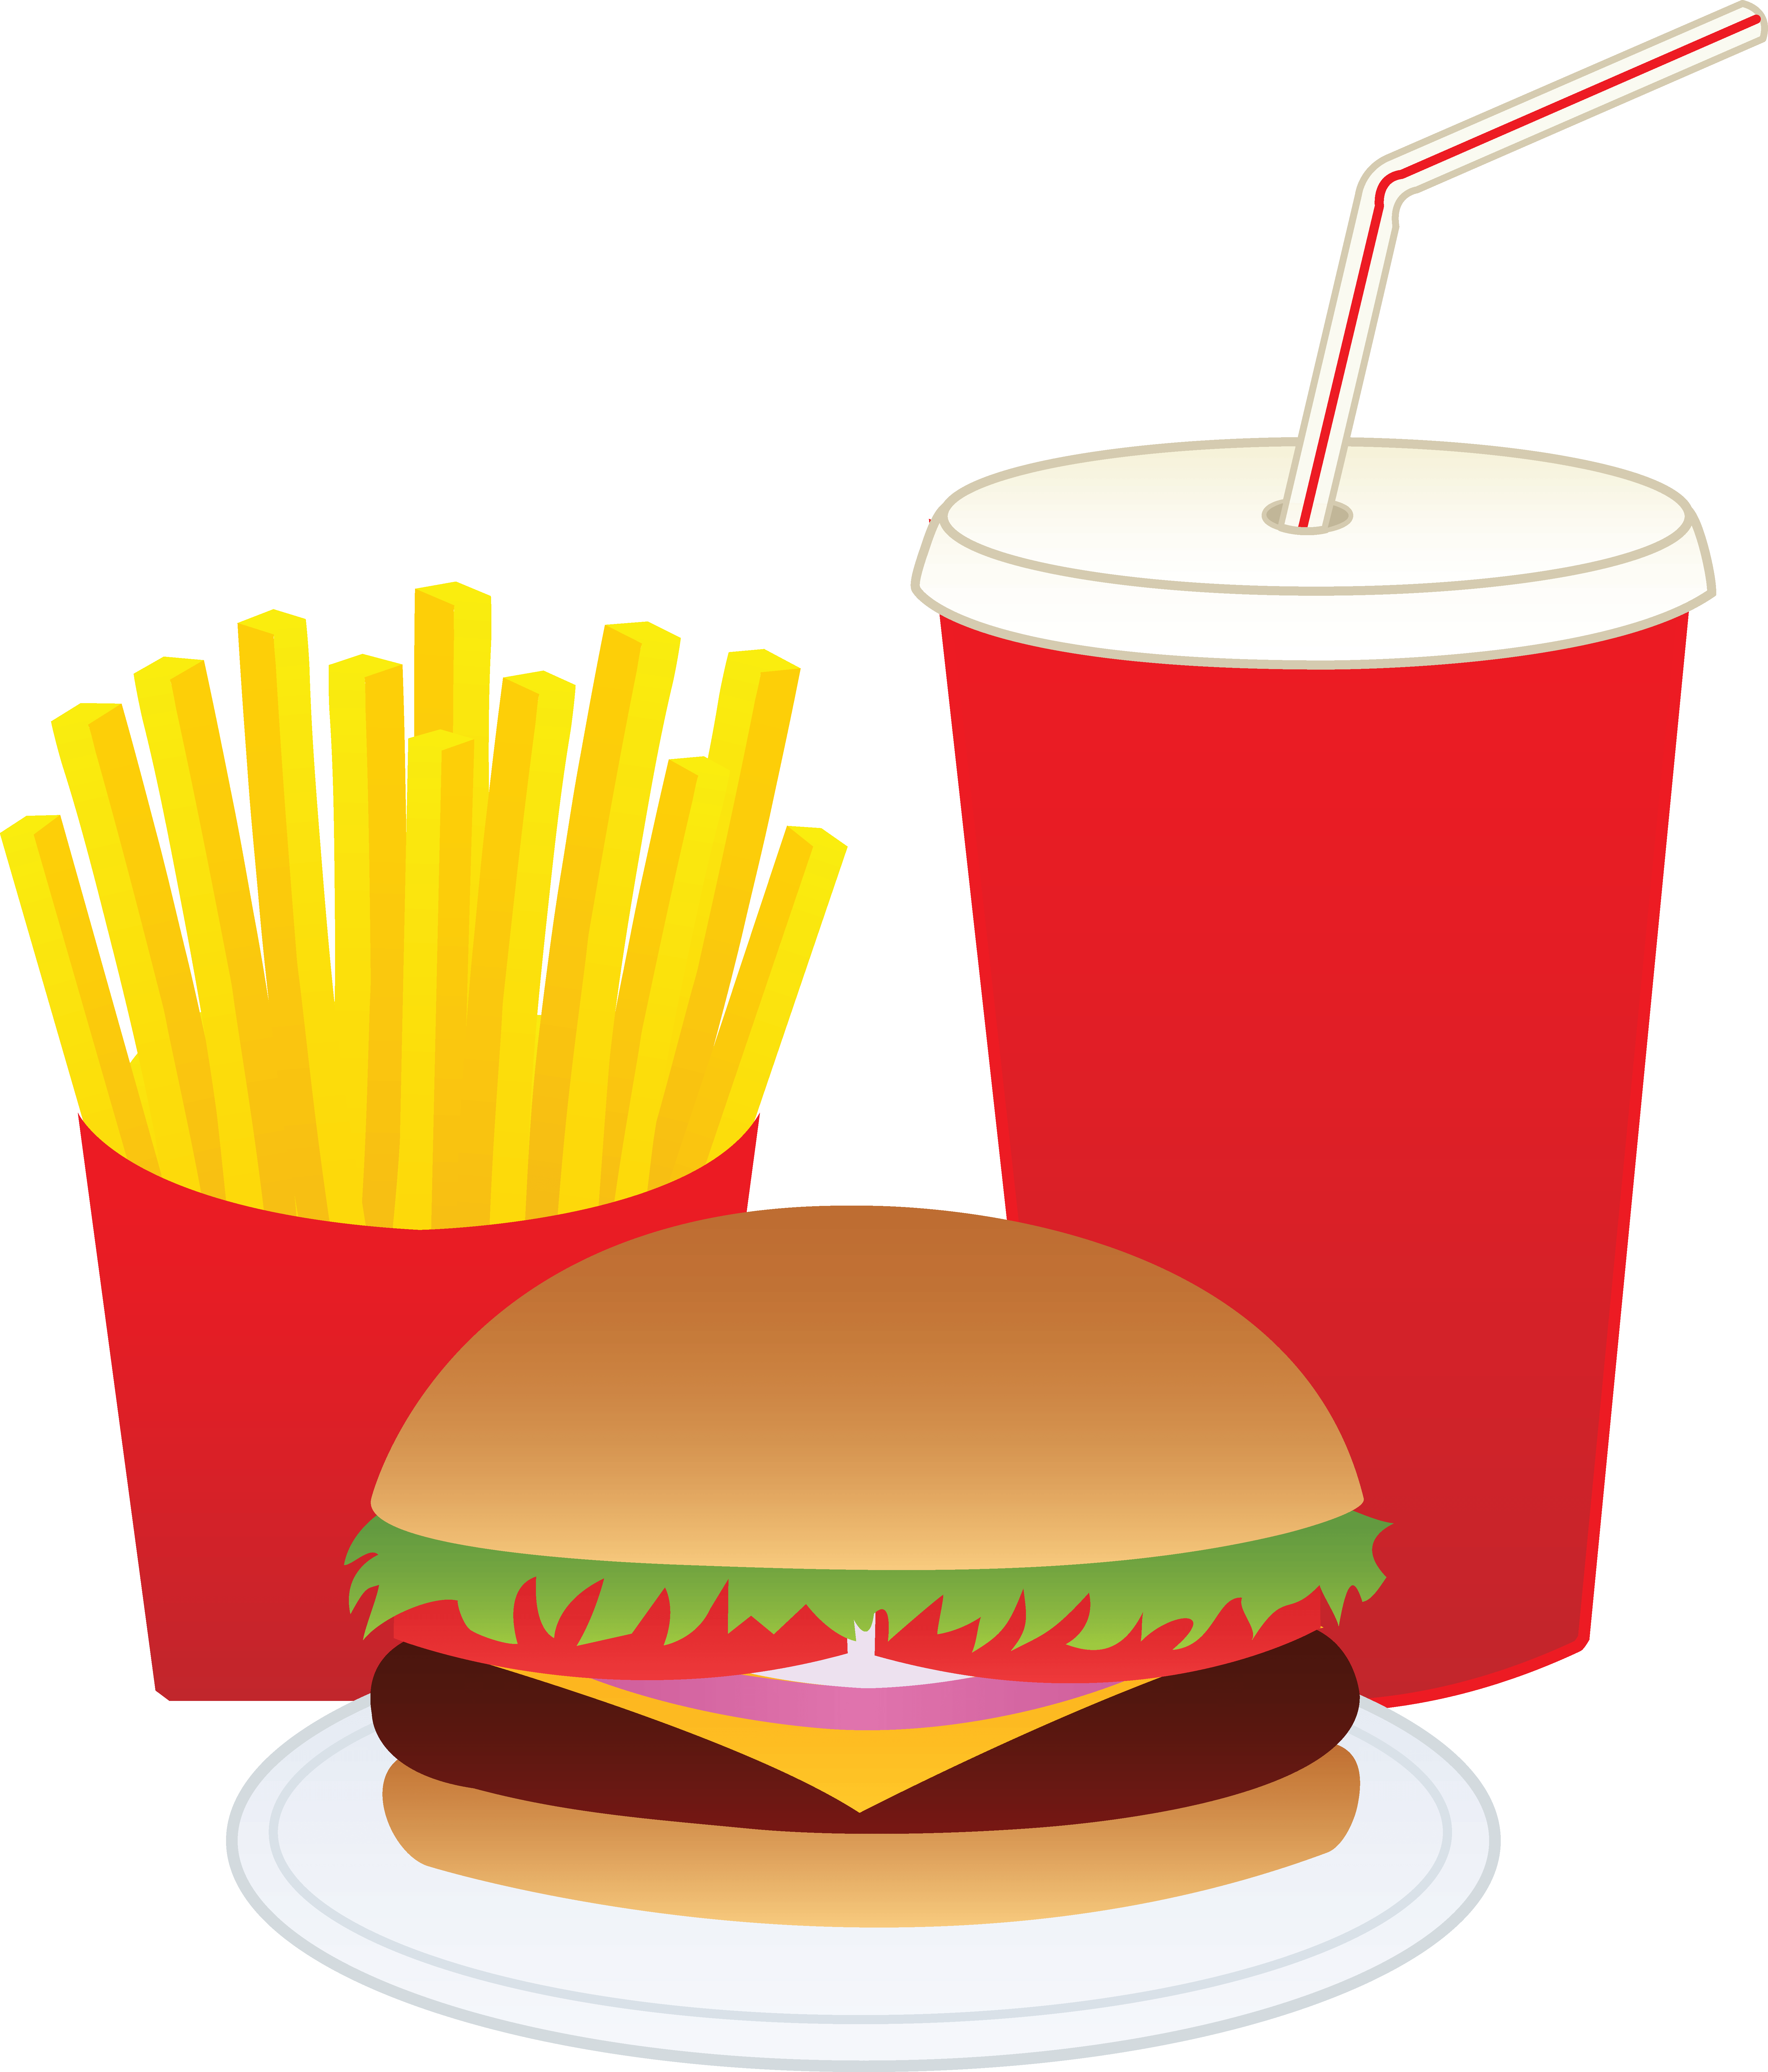 6390x7488 15 Cute hamburger and fries png for free download on mbtskoudsalg